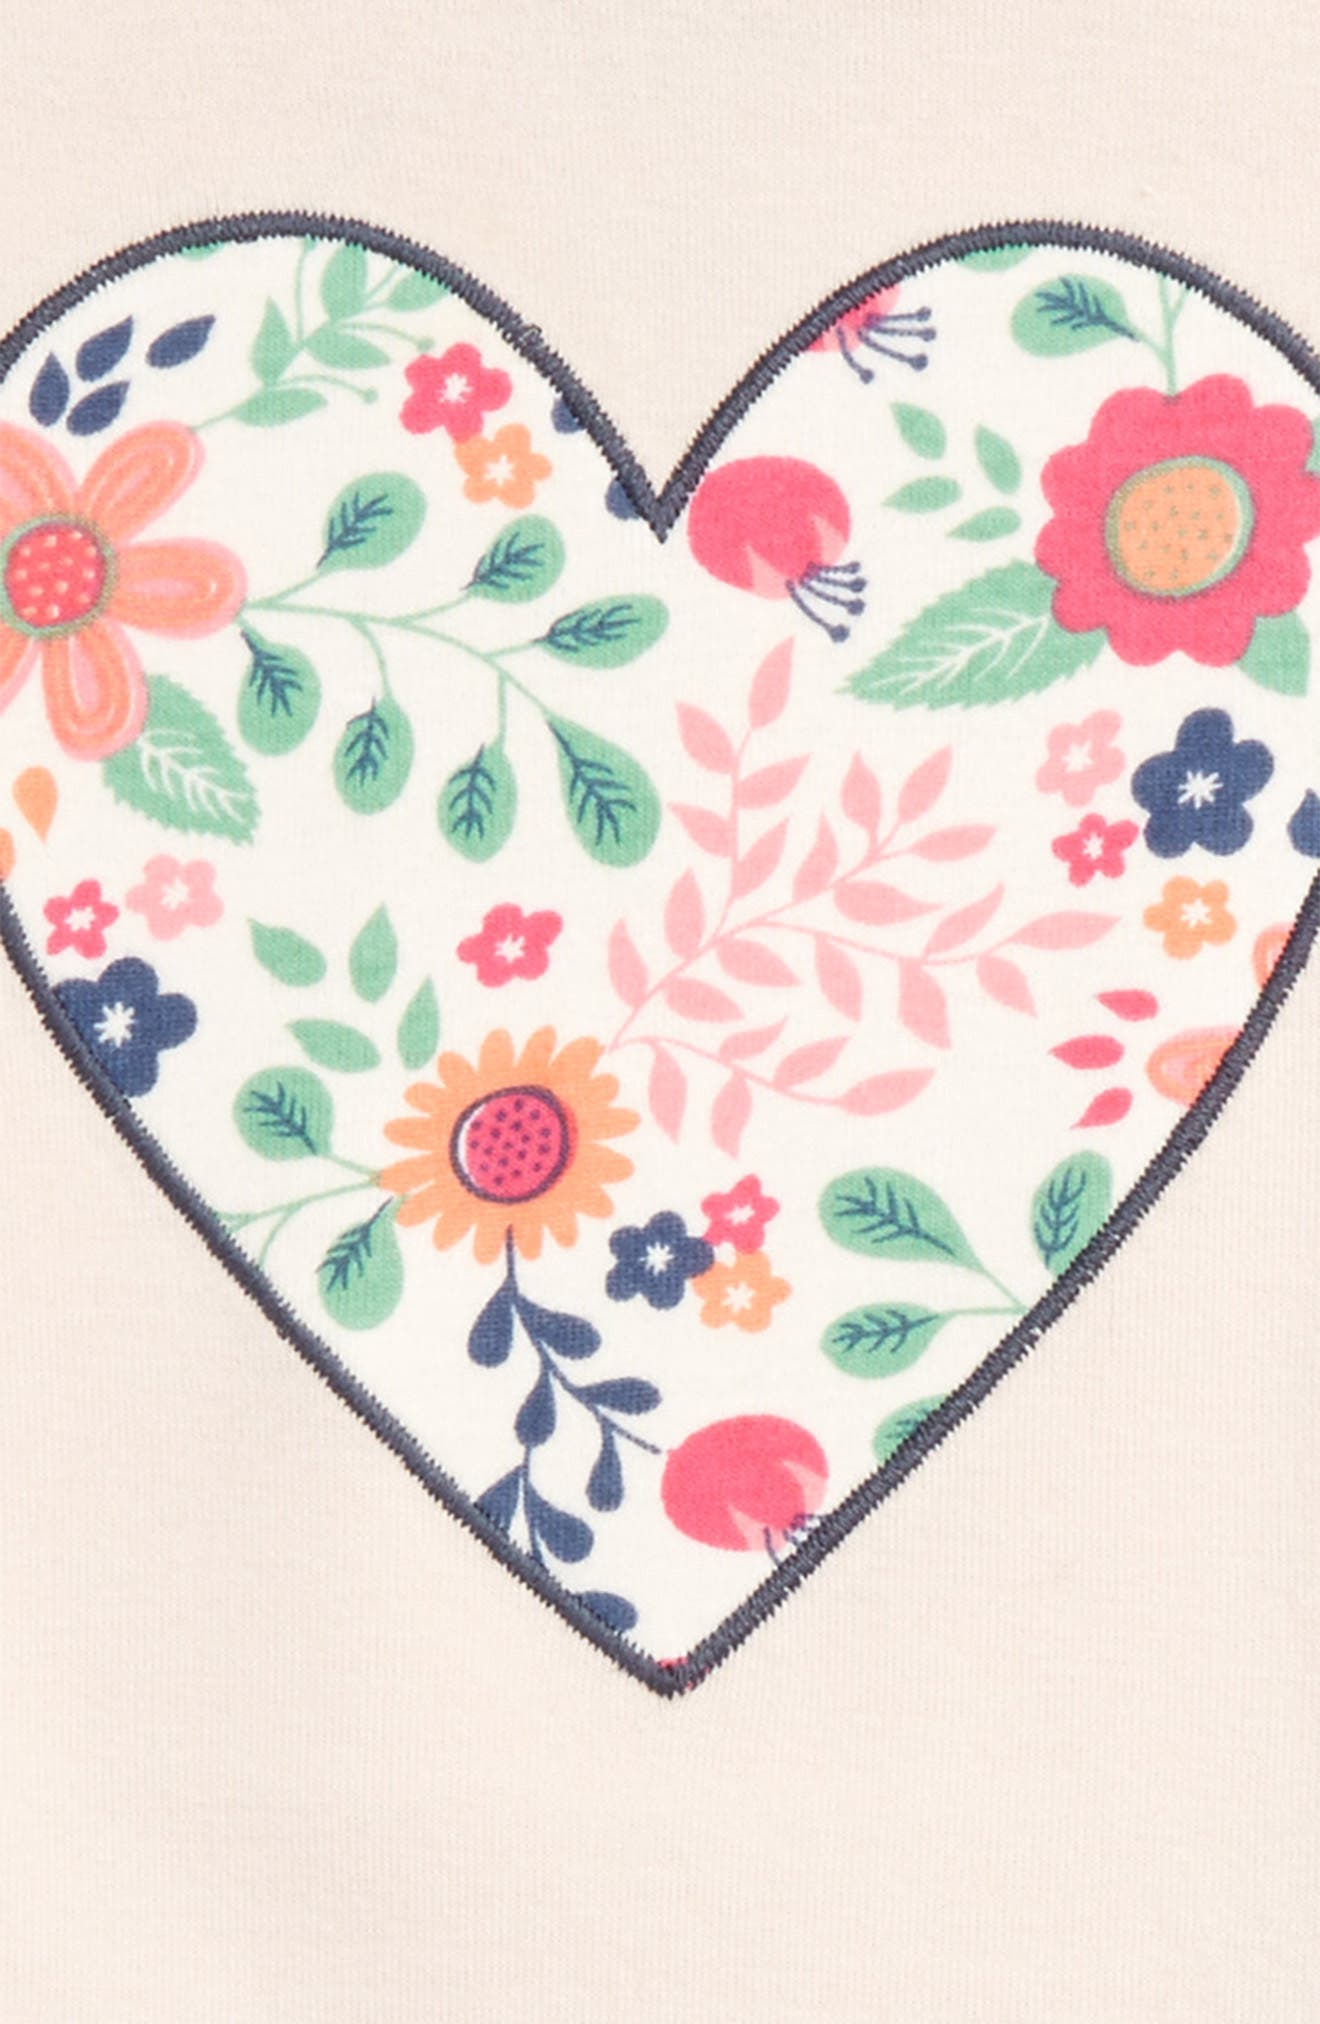 Fitted Two-Piece Pajamas,                             Alternate thumbnail 2, color,                             Pink Peony Bud Floral Heart